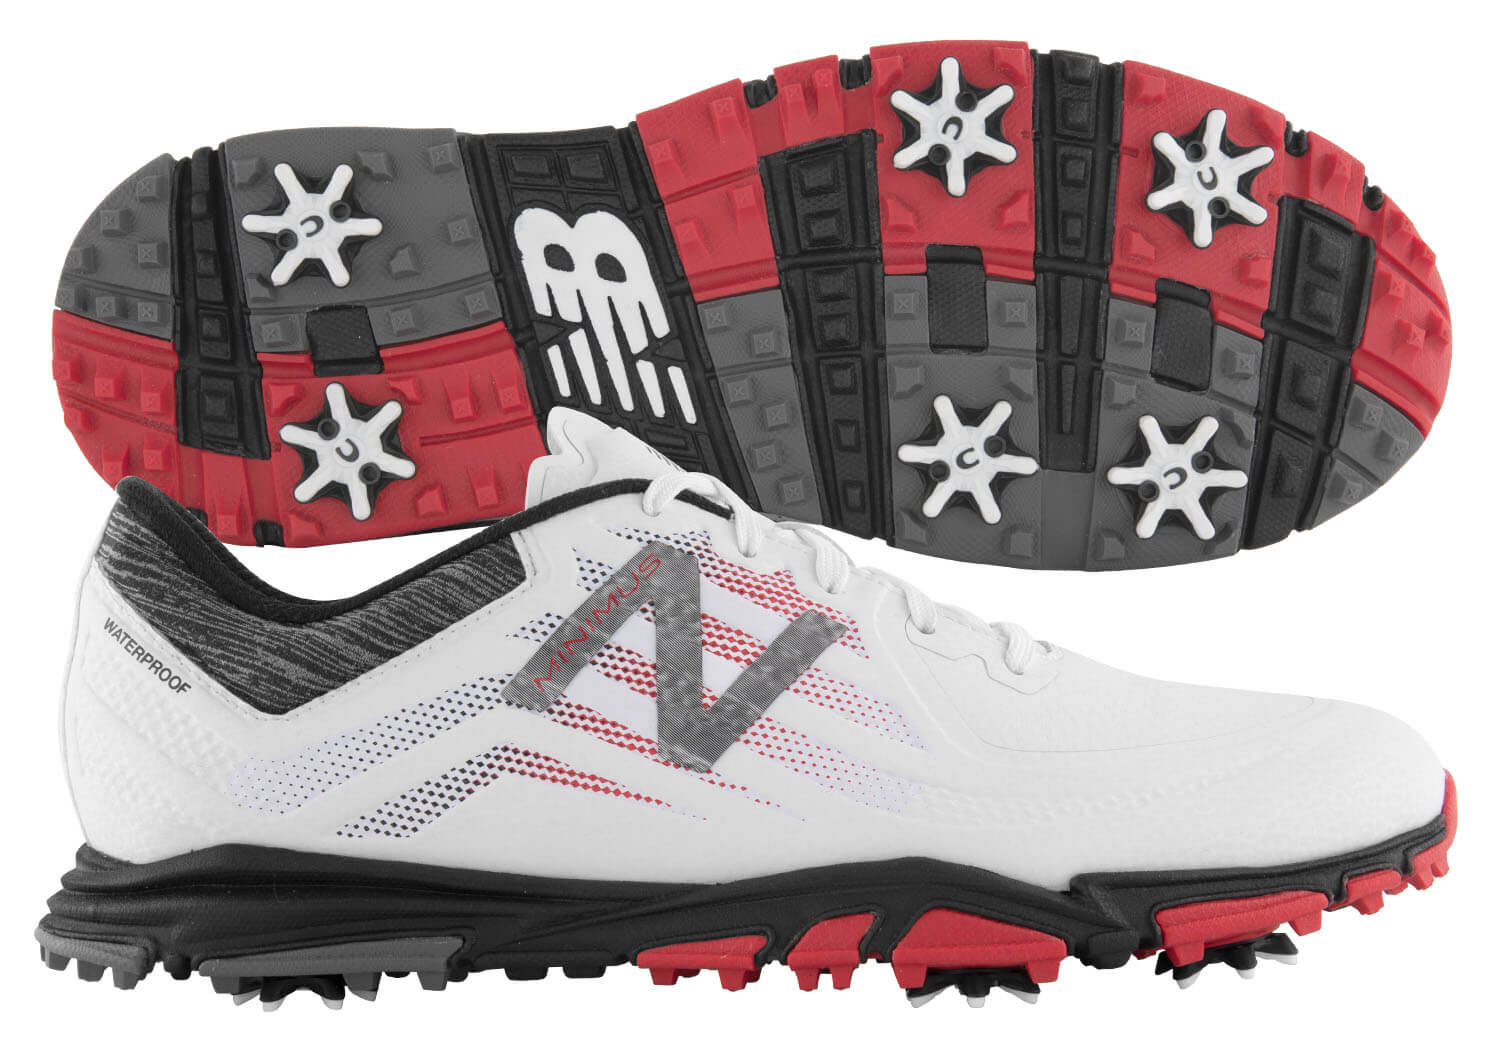 Details about New Balance Minimus Tour Golf Shoes NBG1007WRB White Red Black  2018 Men s New de9f8091de2